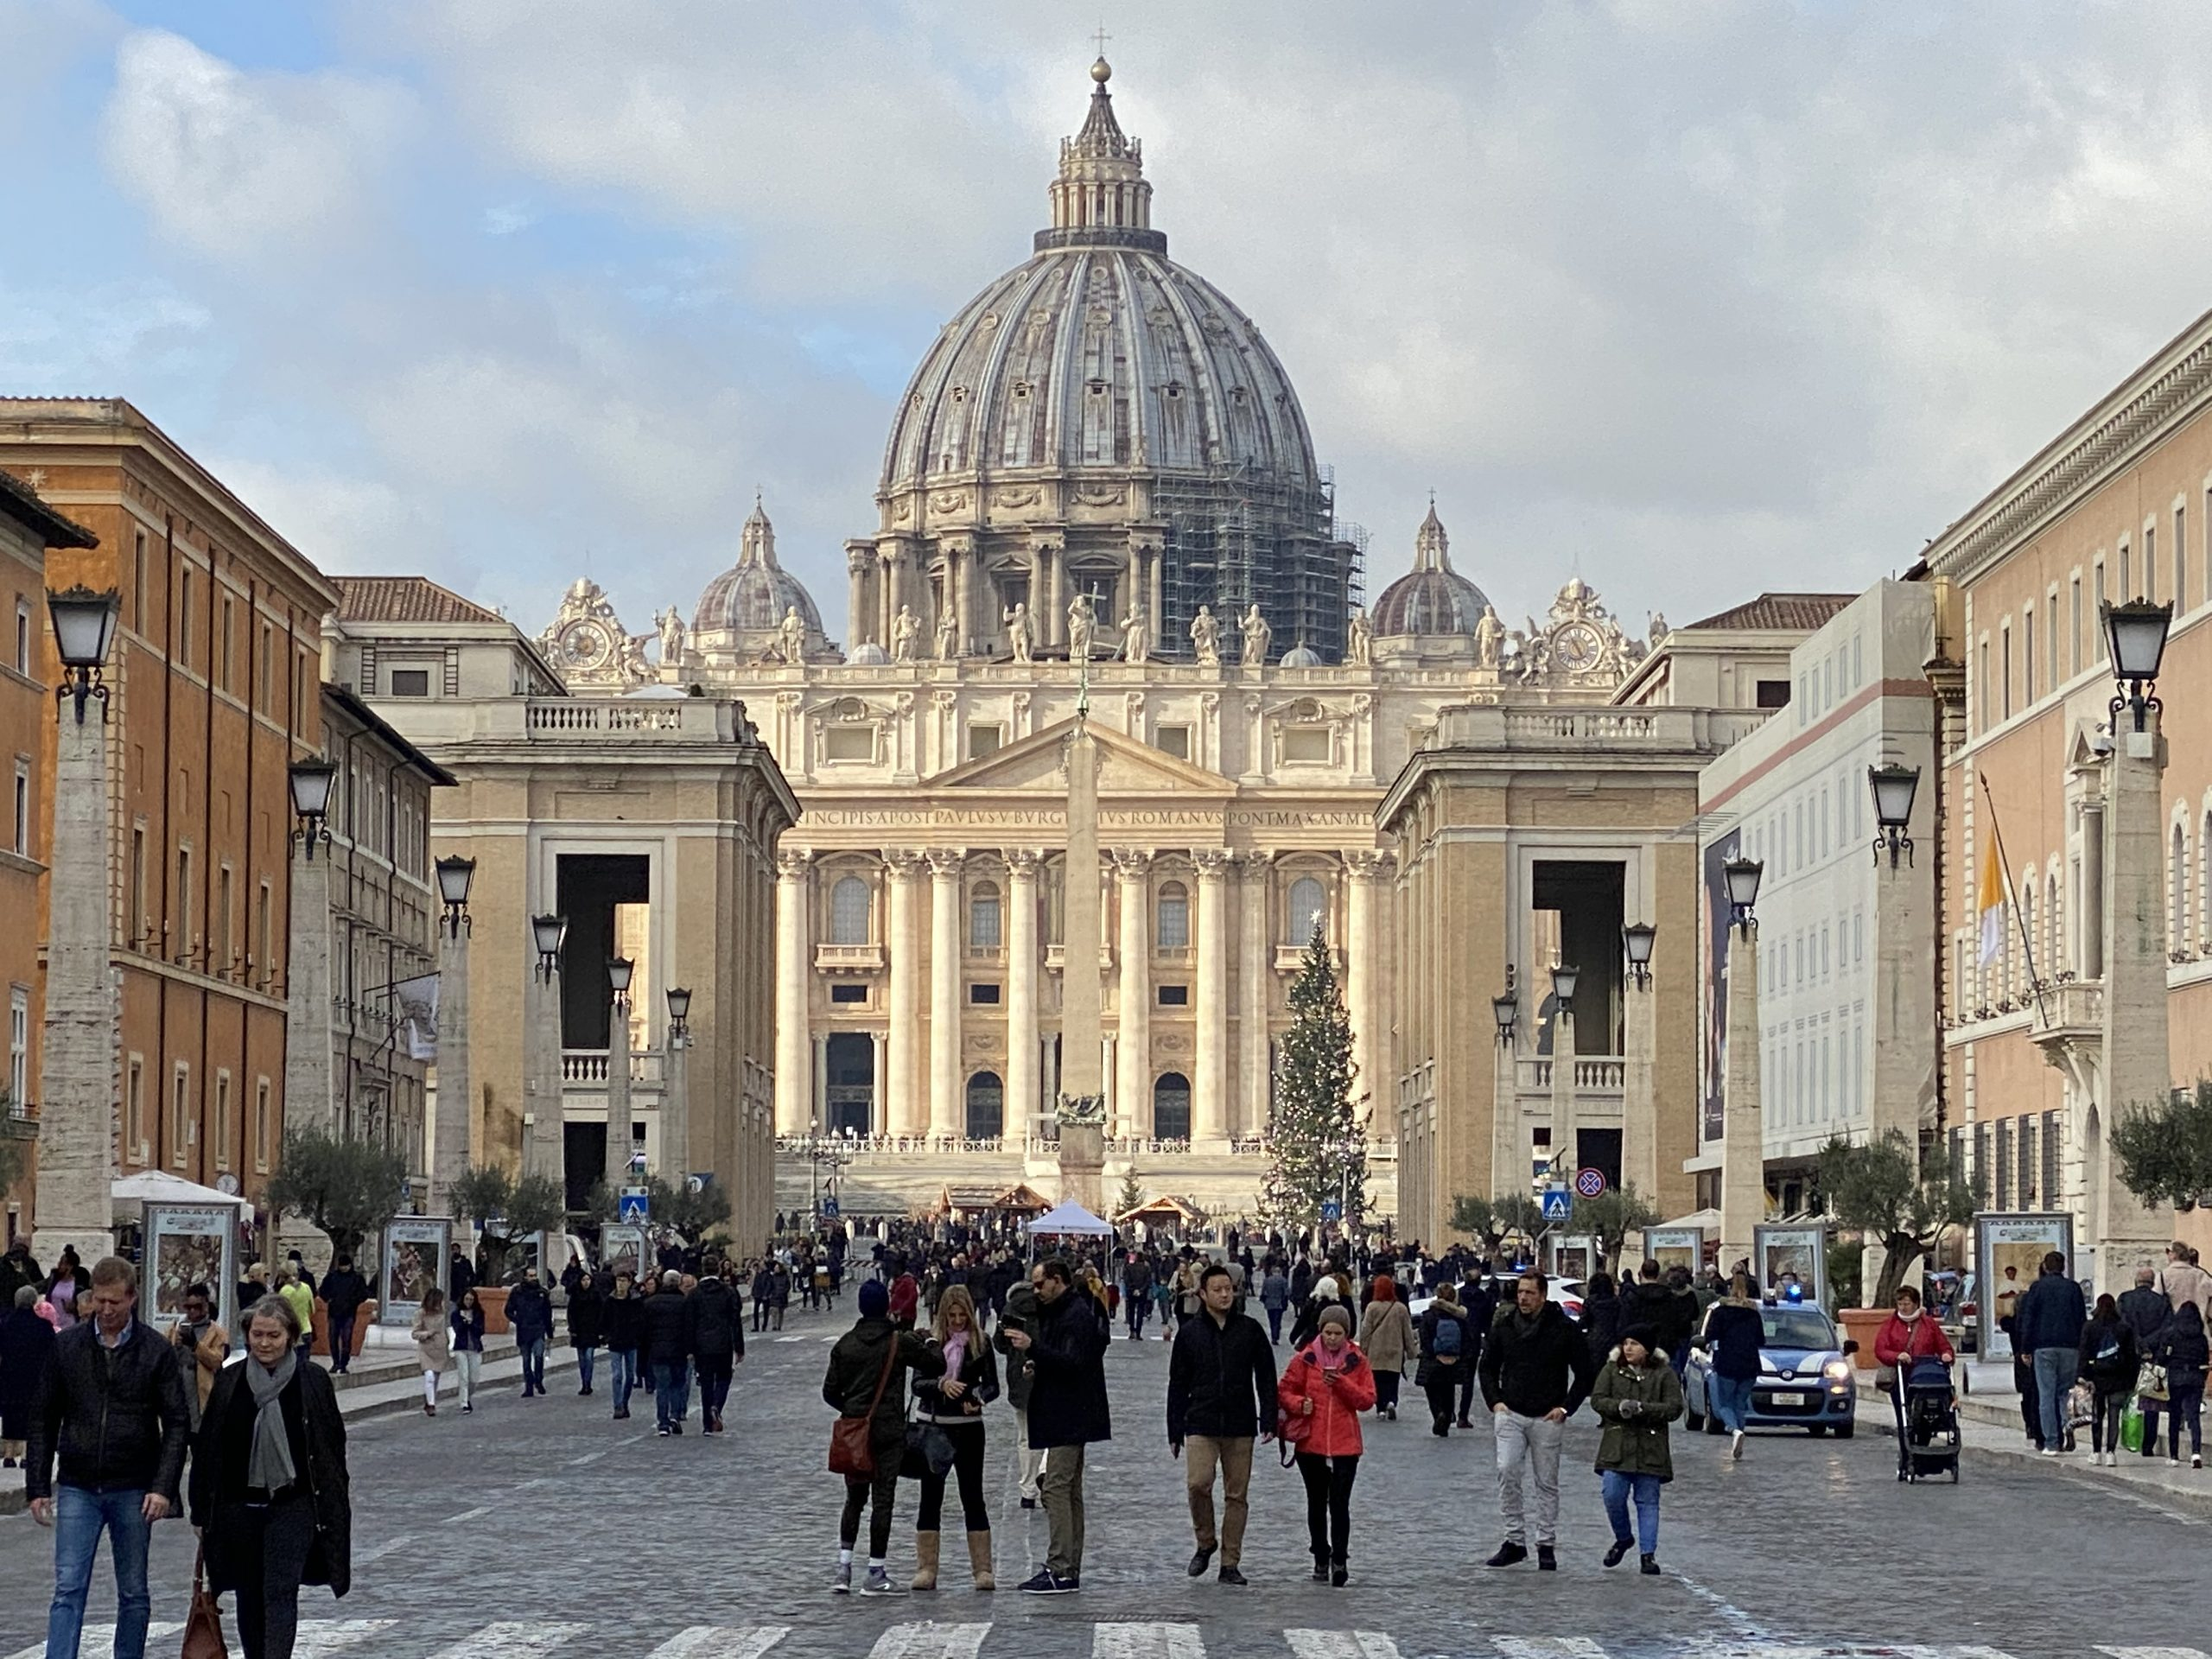 December at St. Peter's Basilica, Rome